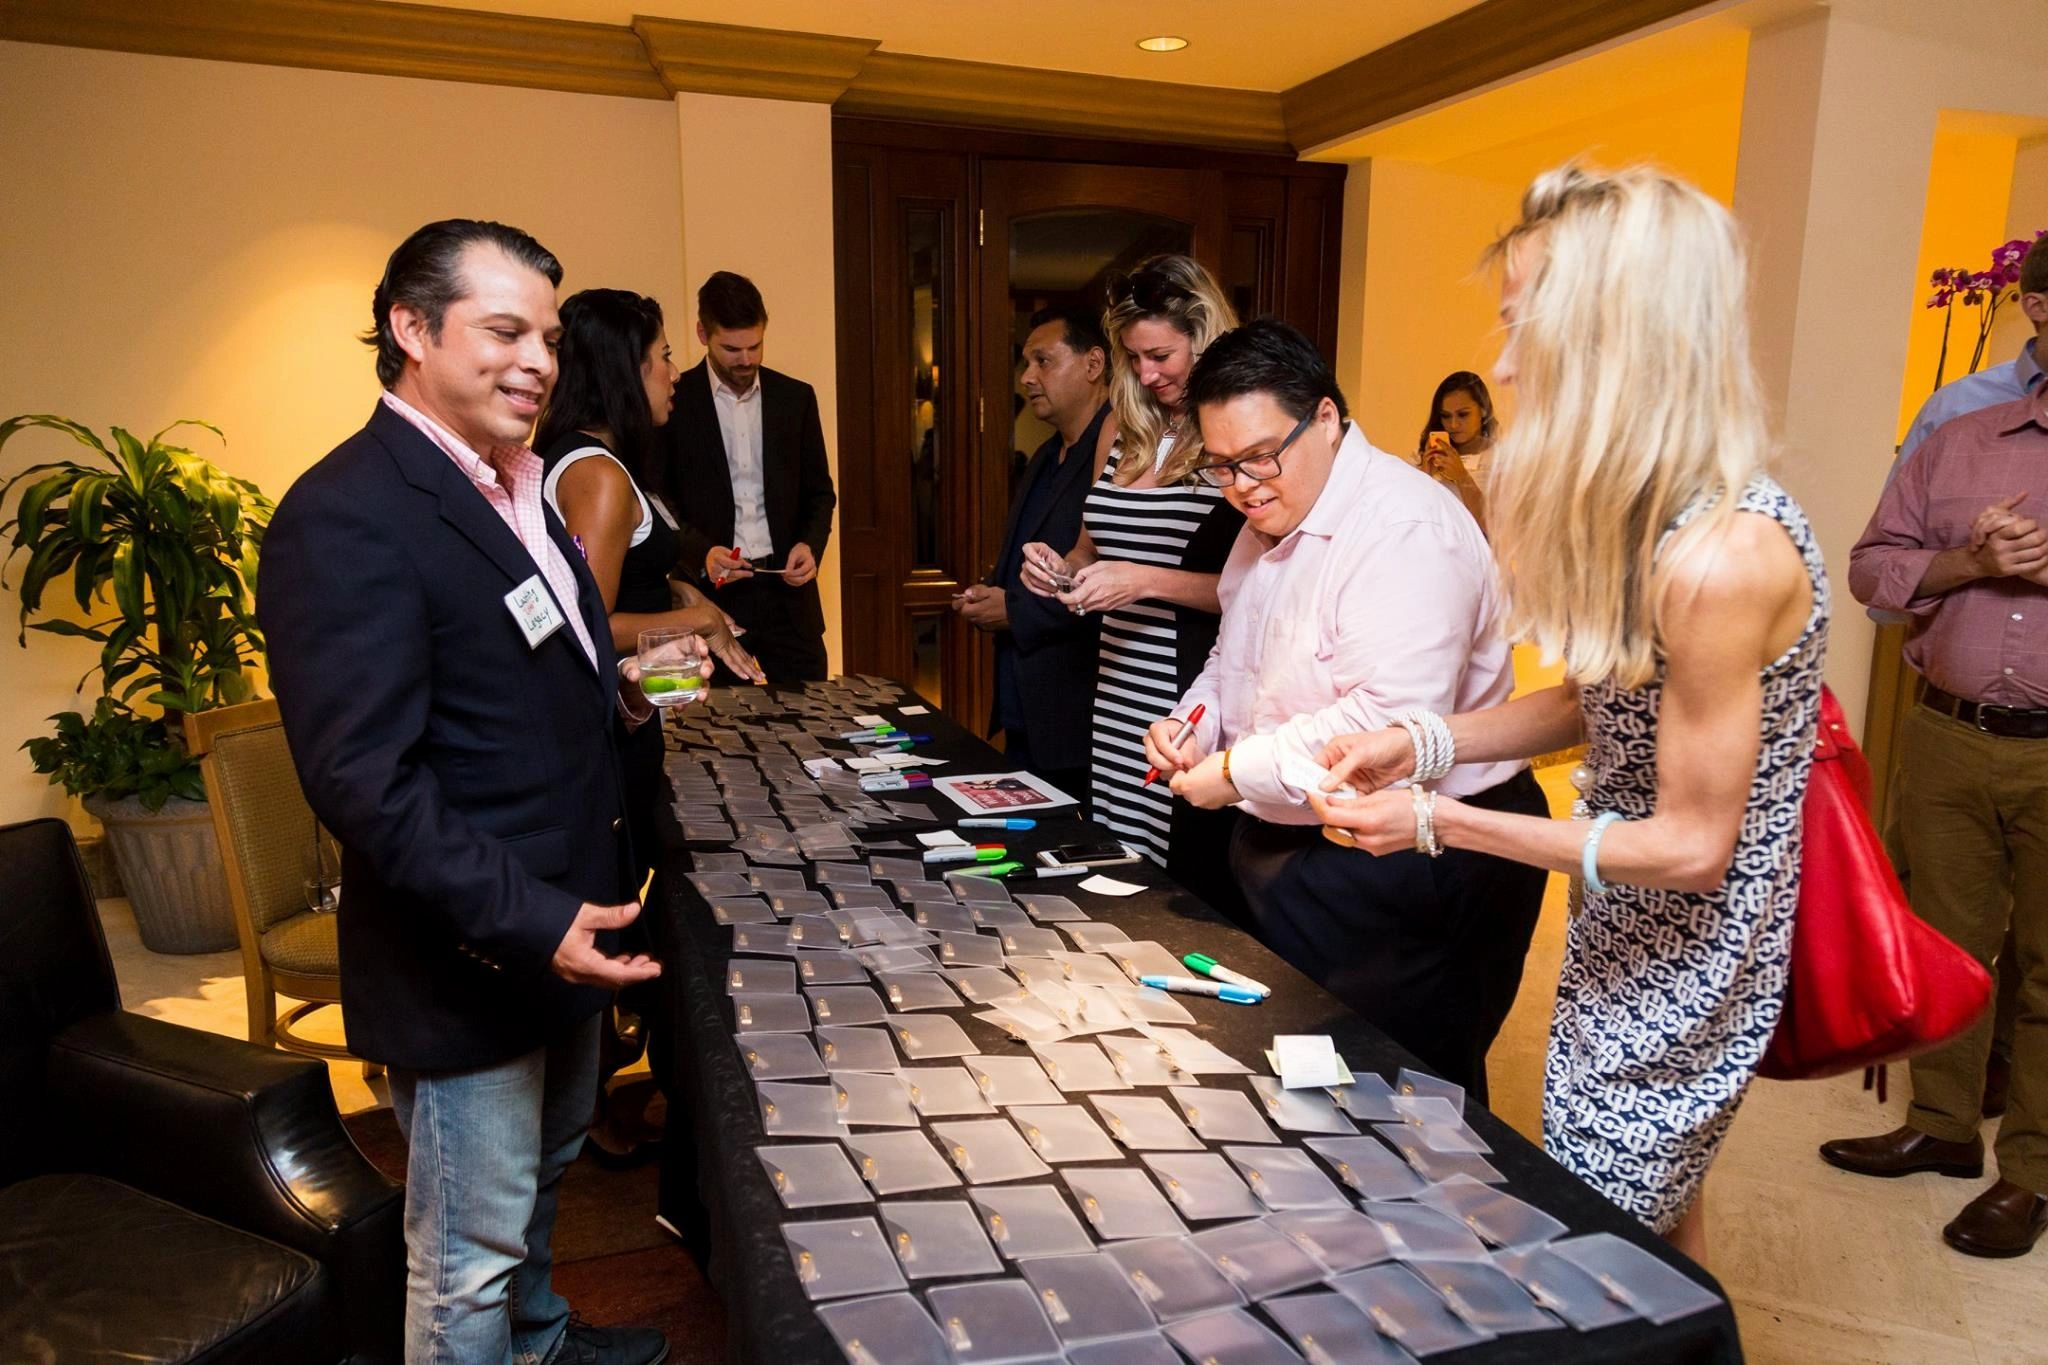 Young Professionals Networking in Houston